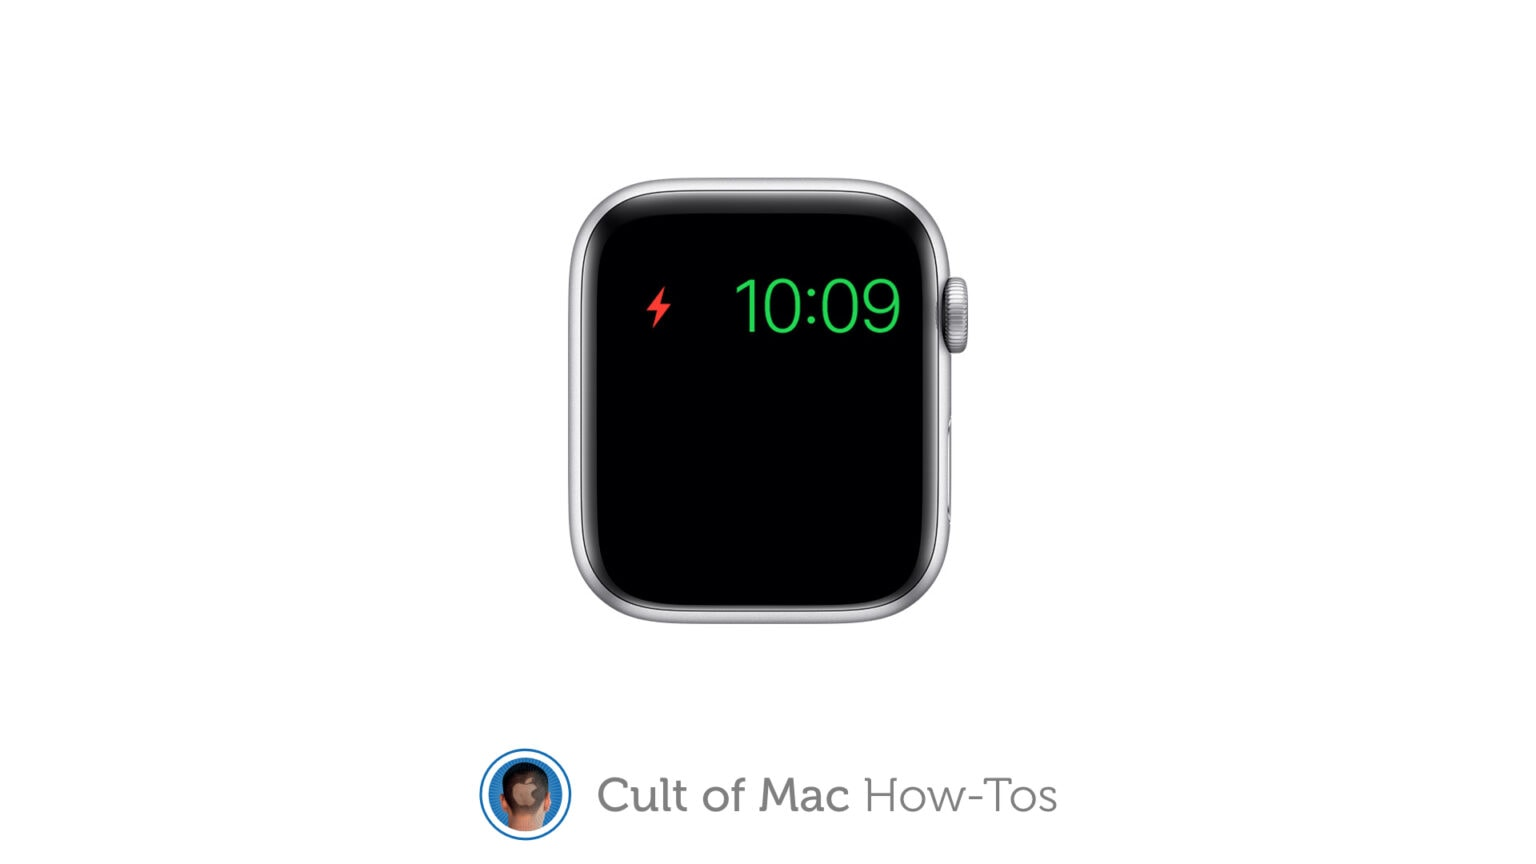 Apple Watch Power Reserve mode